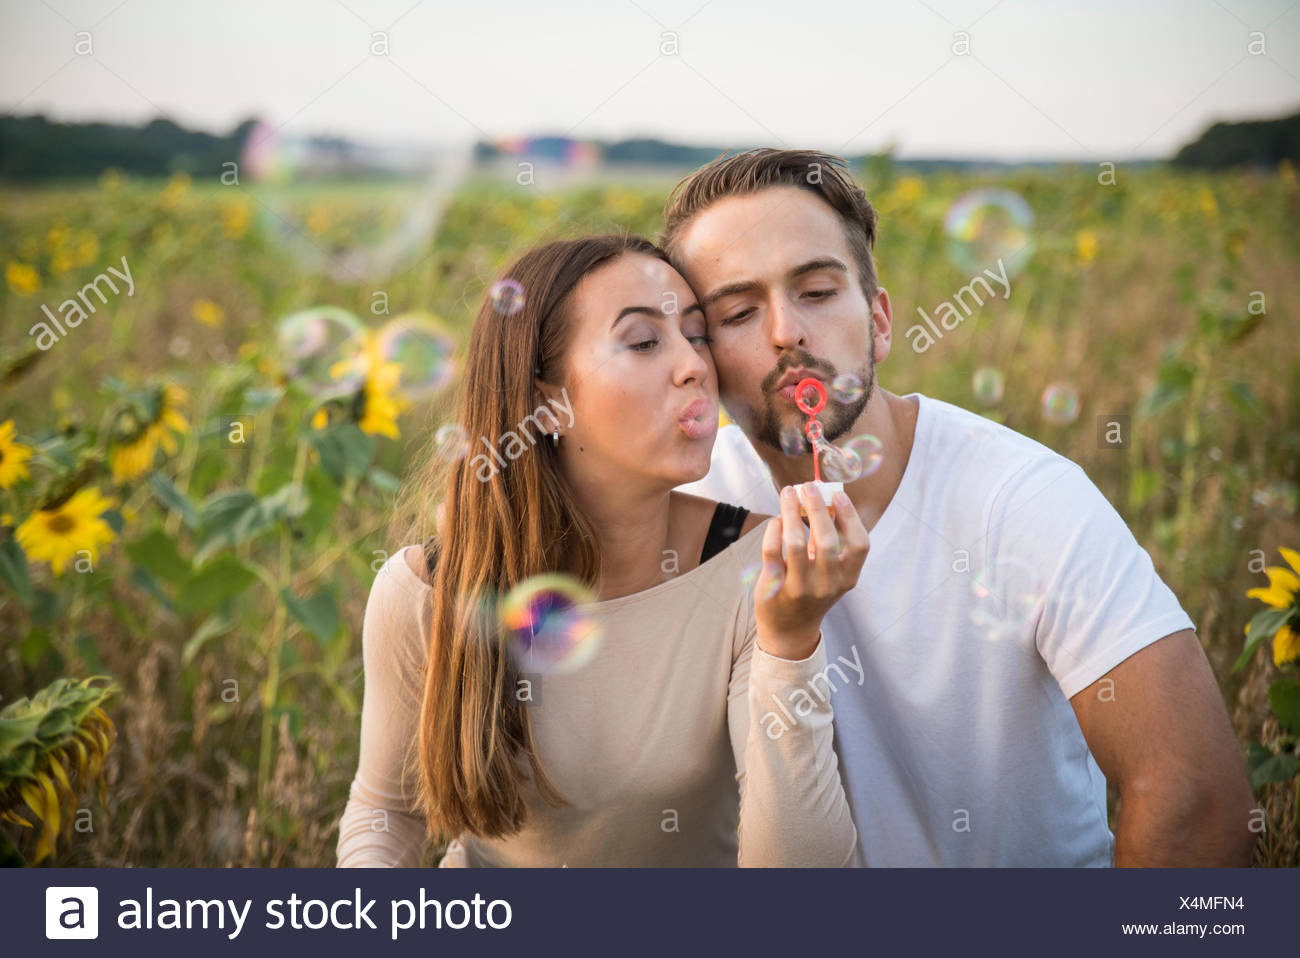 Couple blowing bubbles in field - Stock Image